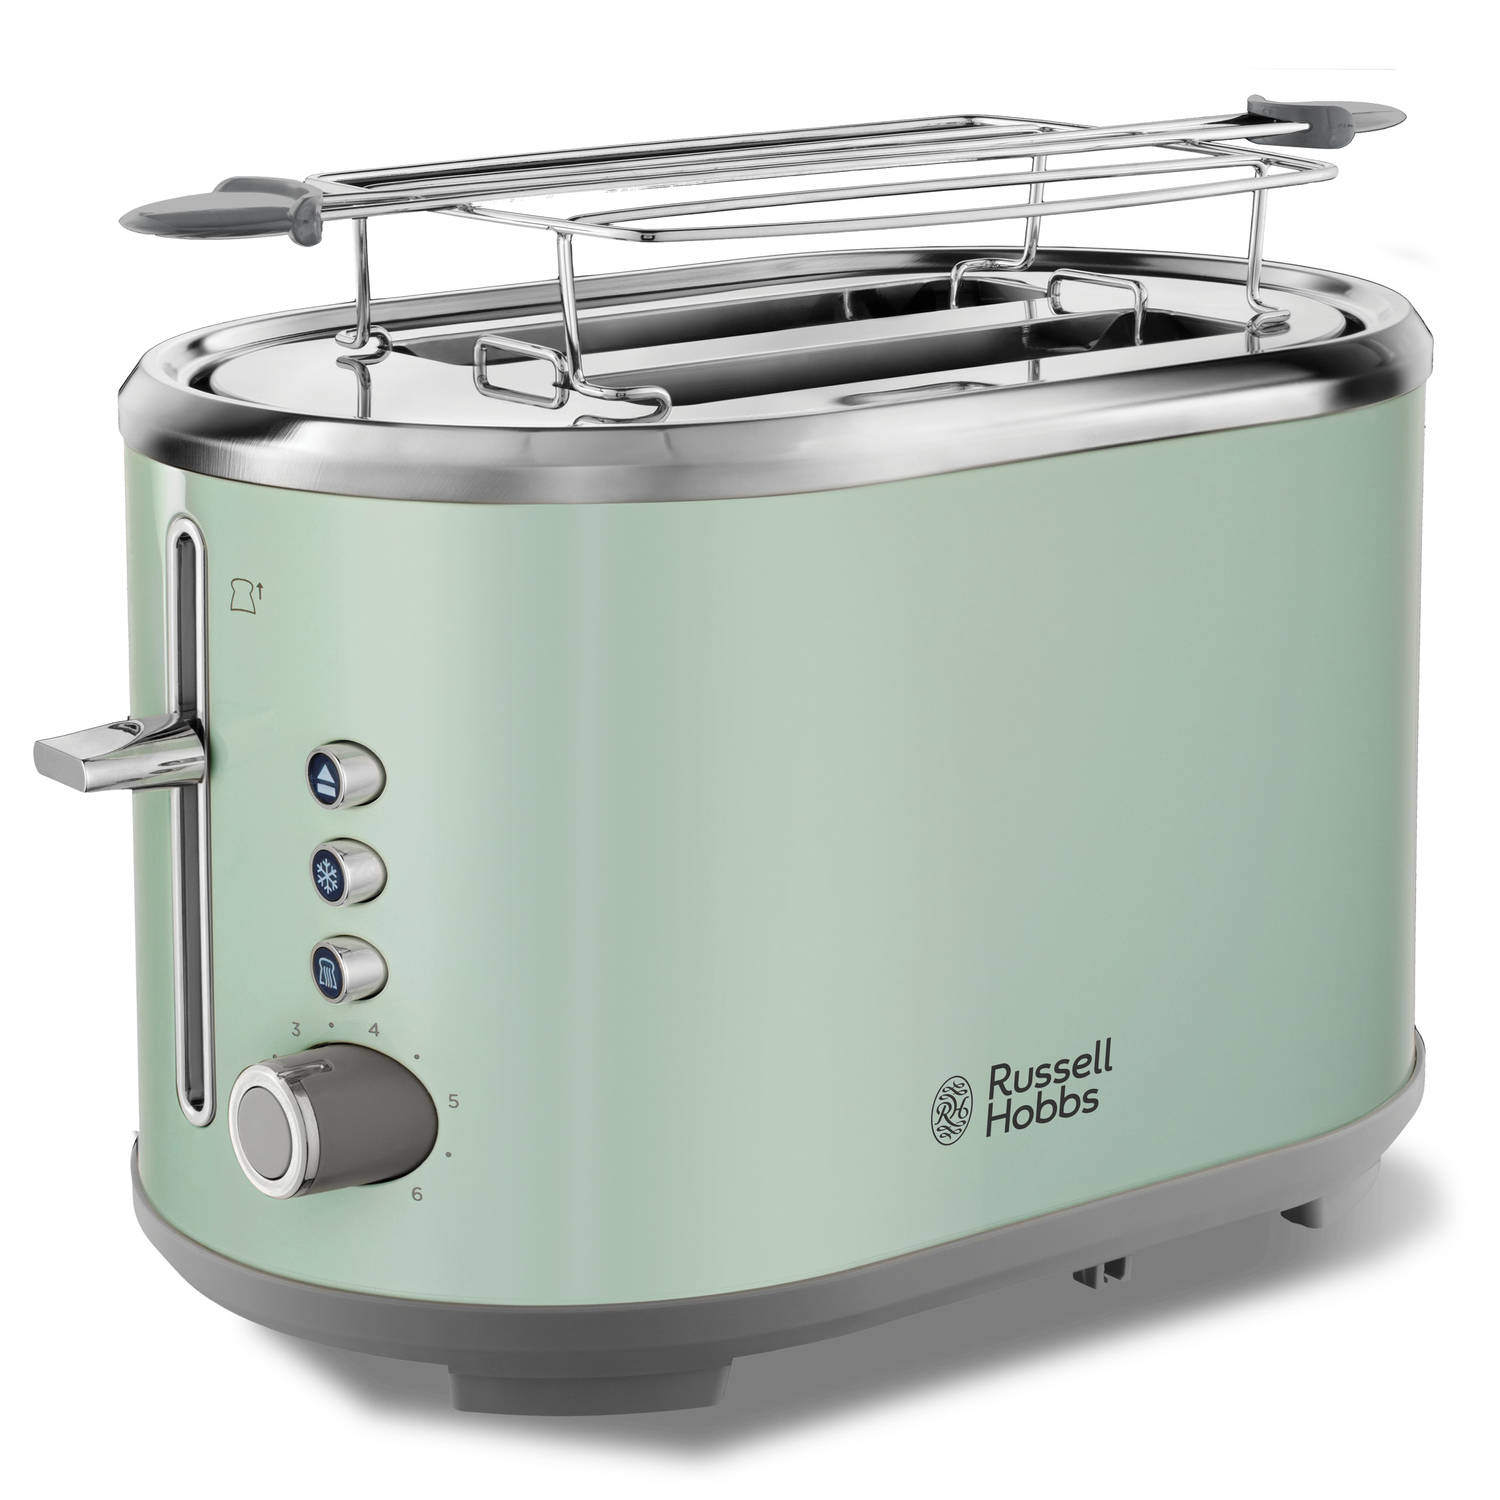 Russell Hobbs broodrooster Bubble Green 25080-56